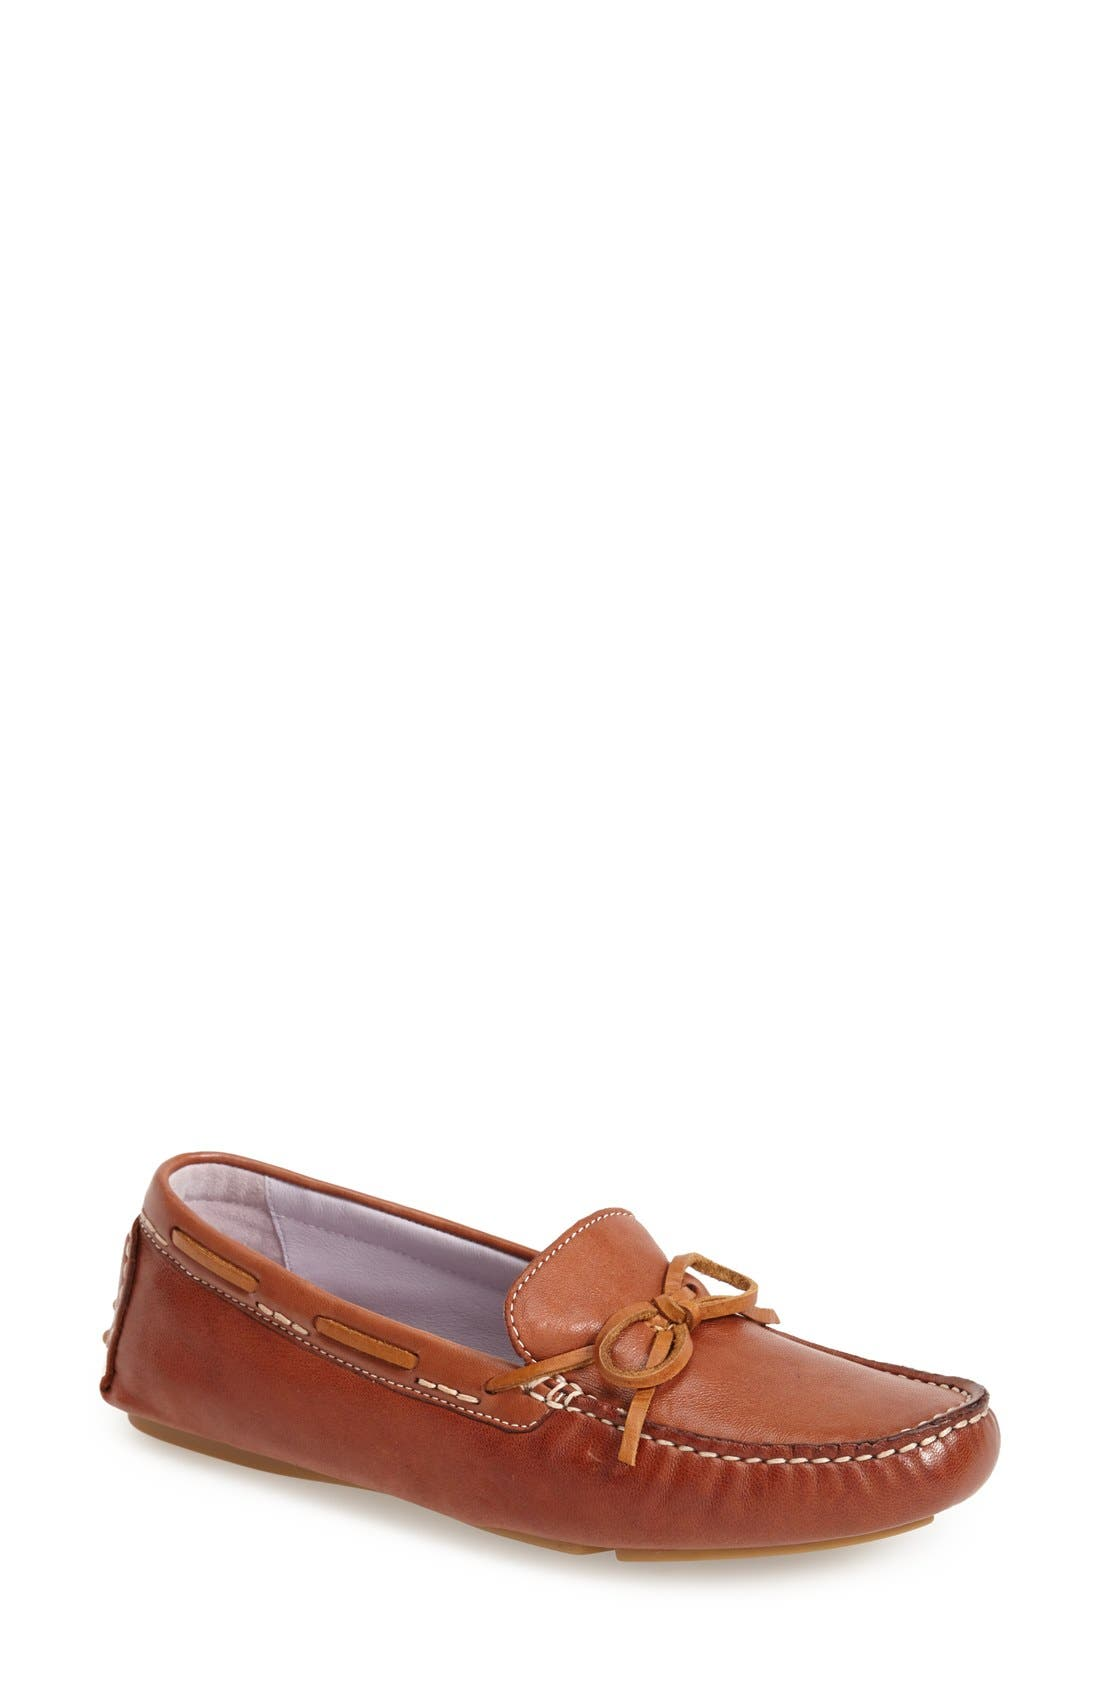 Johnston & Murphy 'Maggie' Moccasin